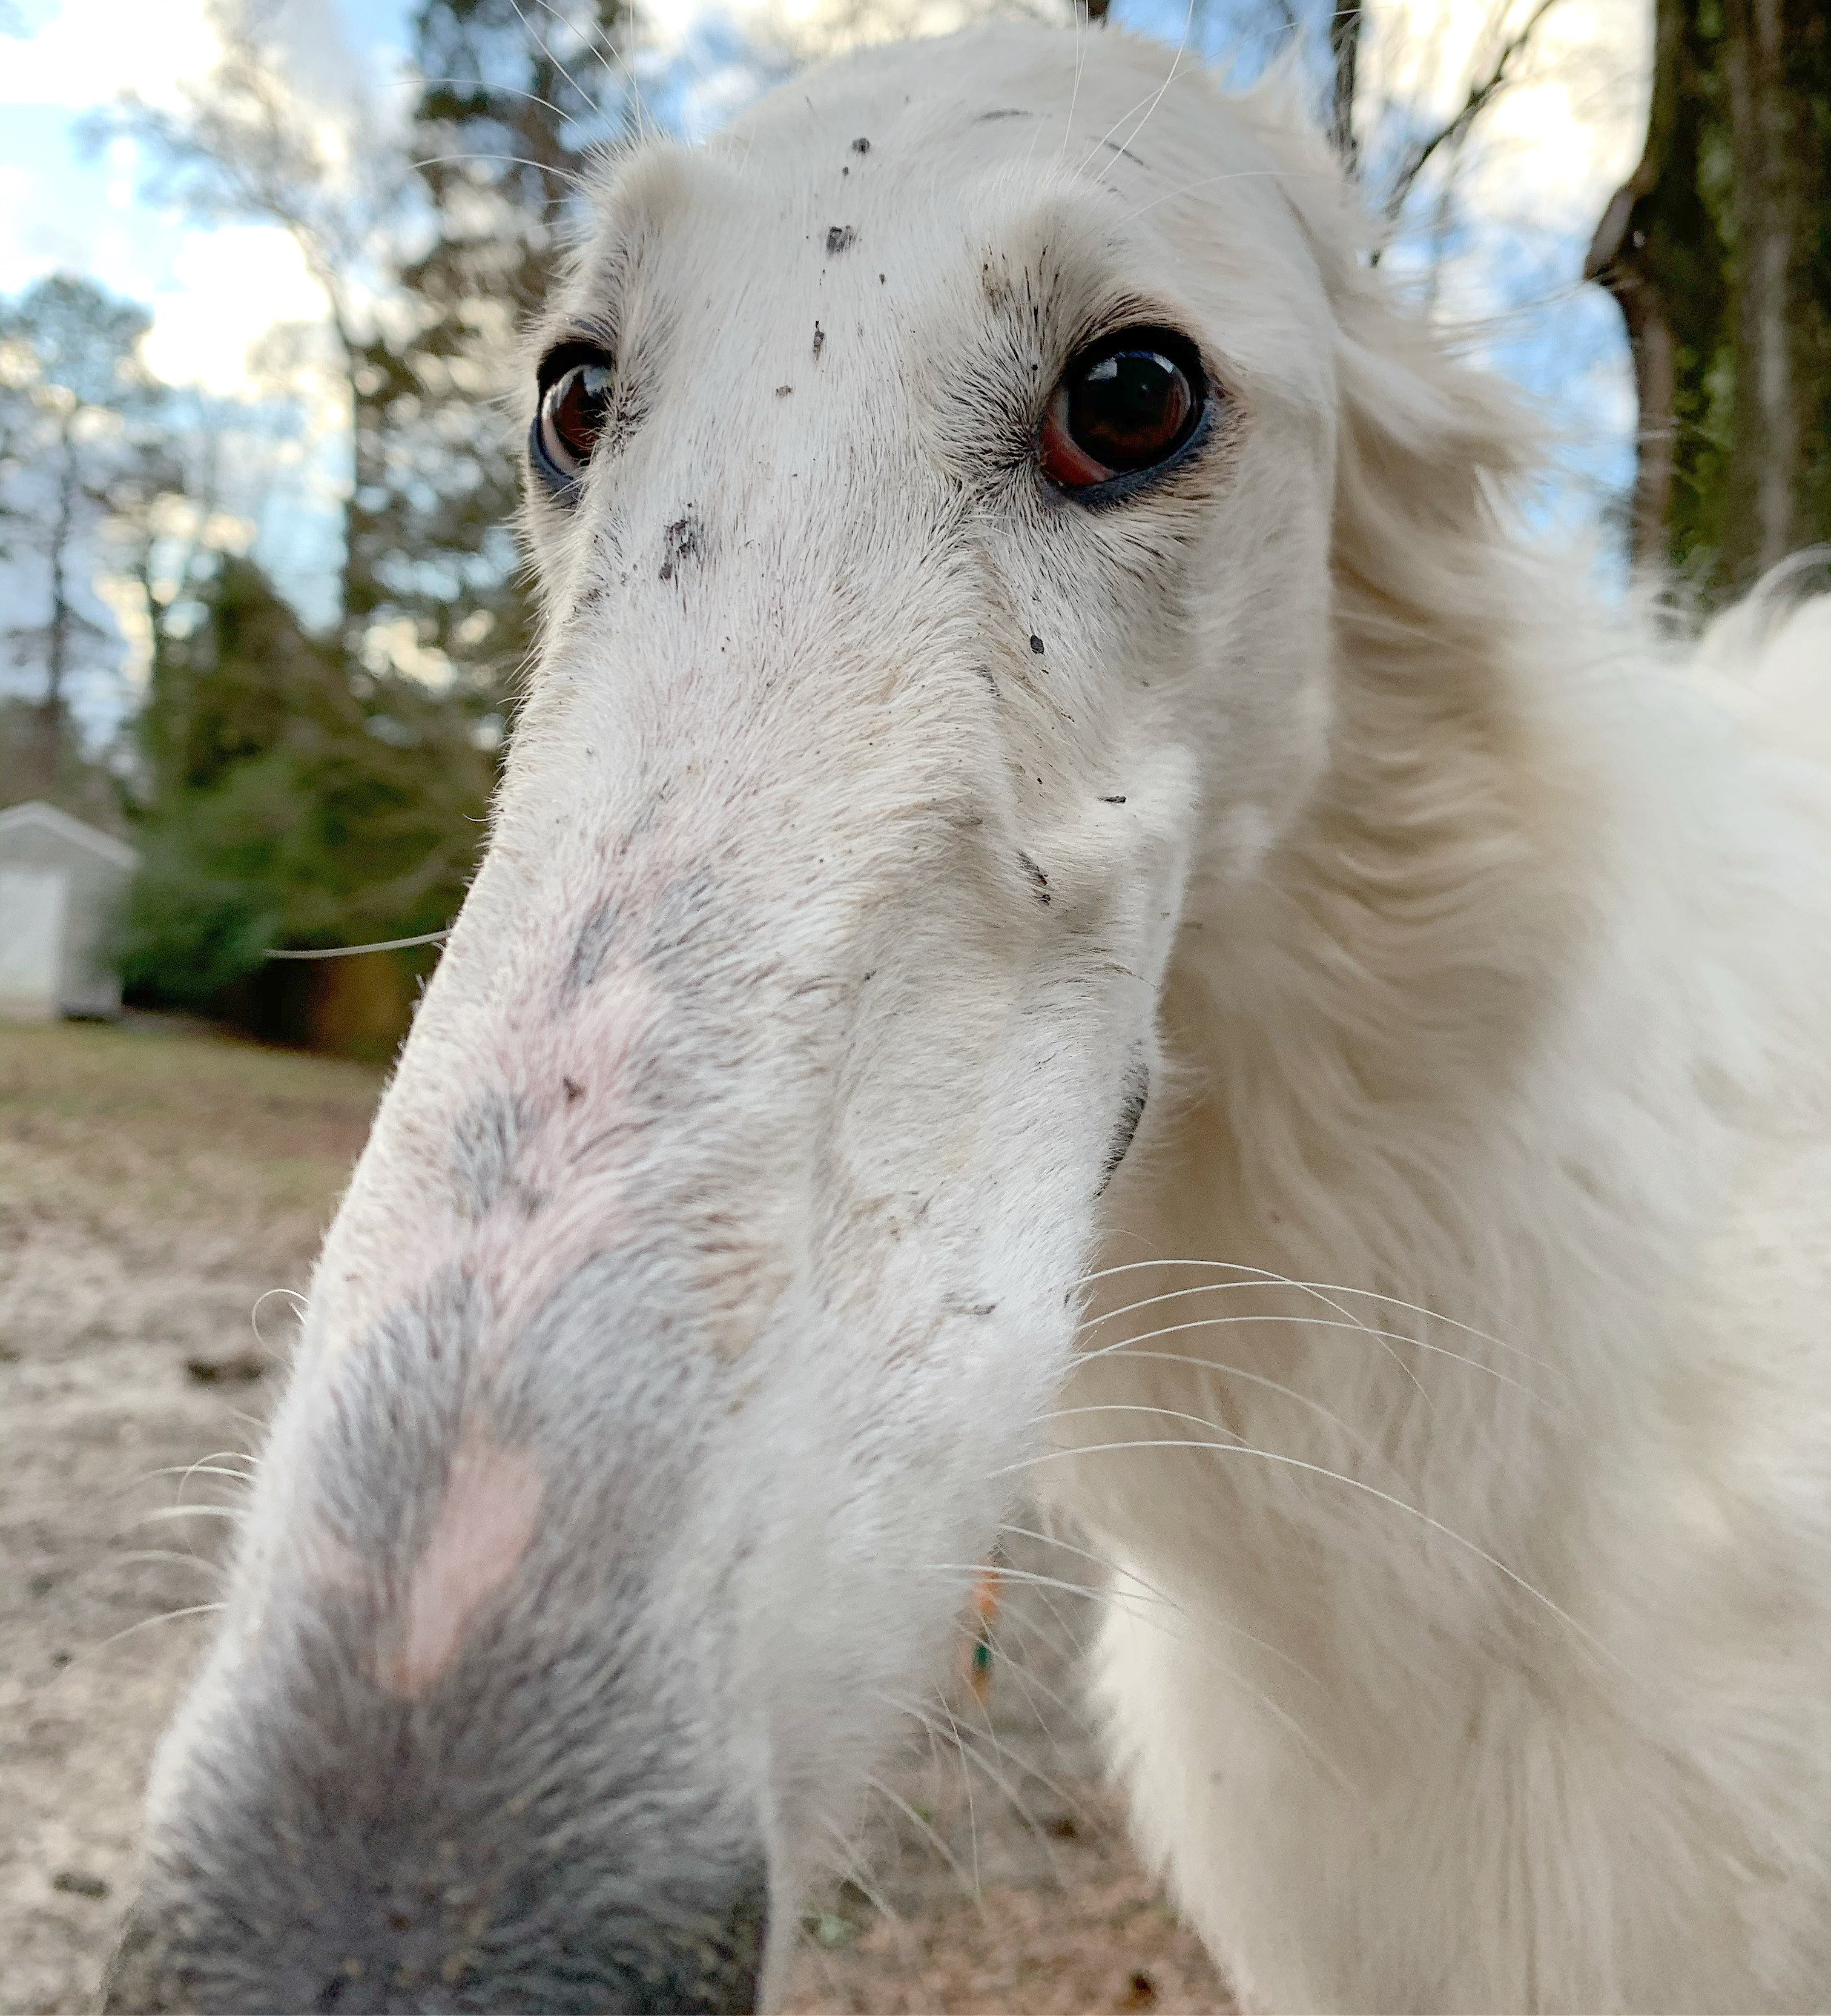 Long nosed-dog showing off snout